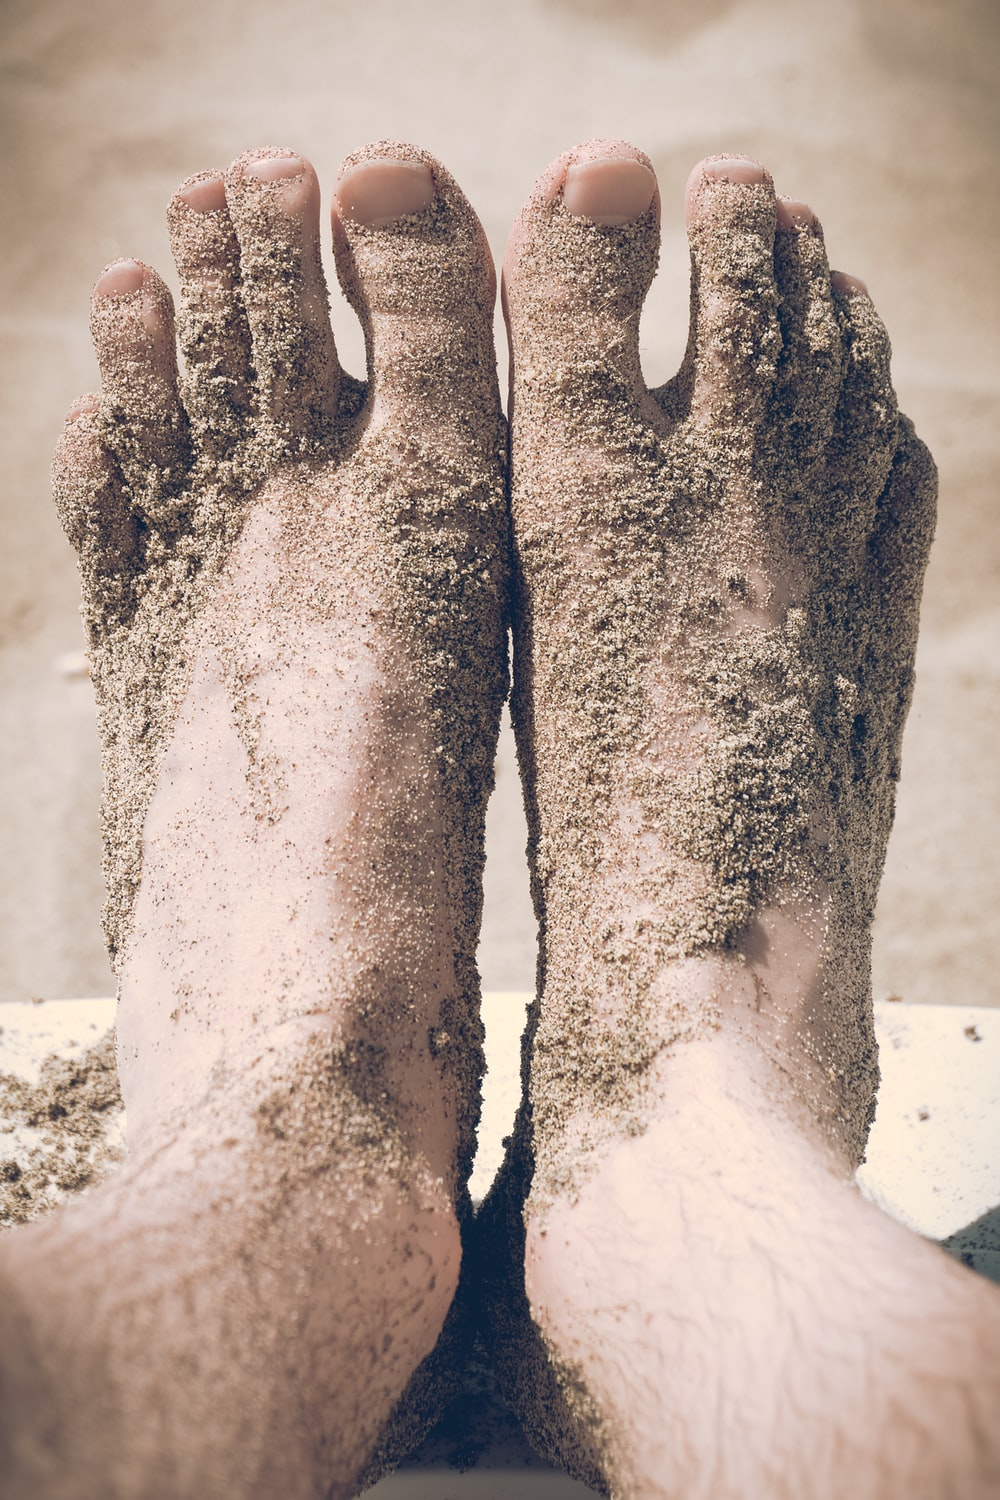 closeup photo of person's feet covered with sand